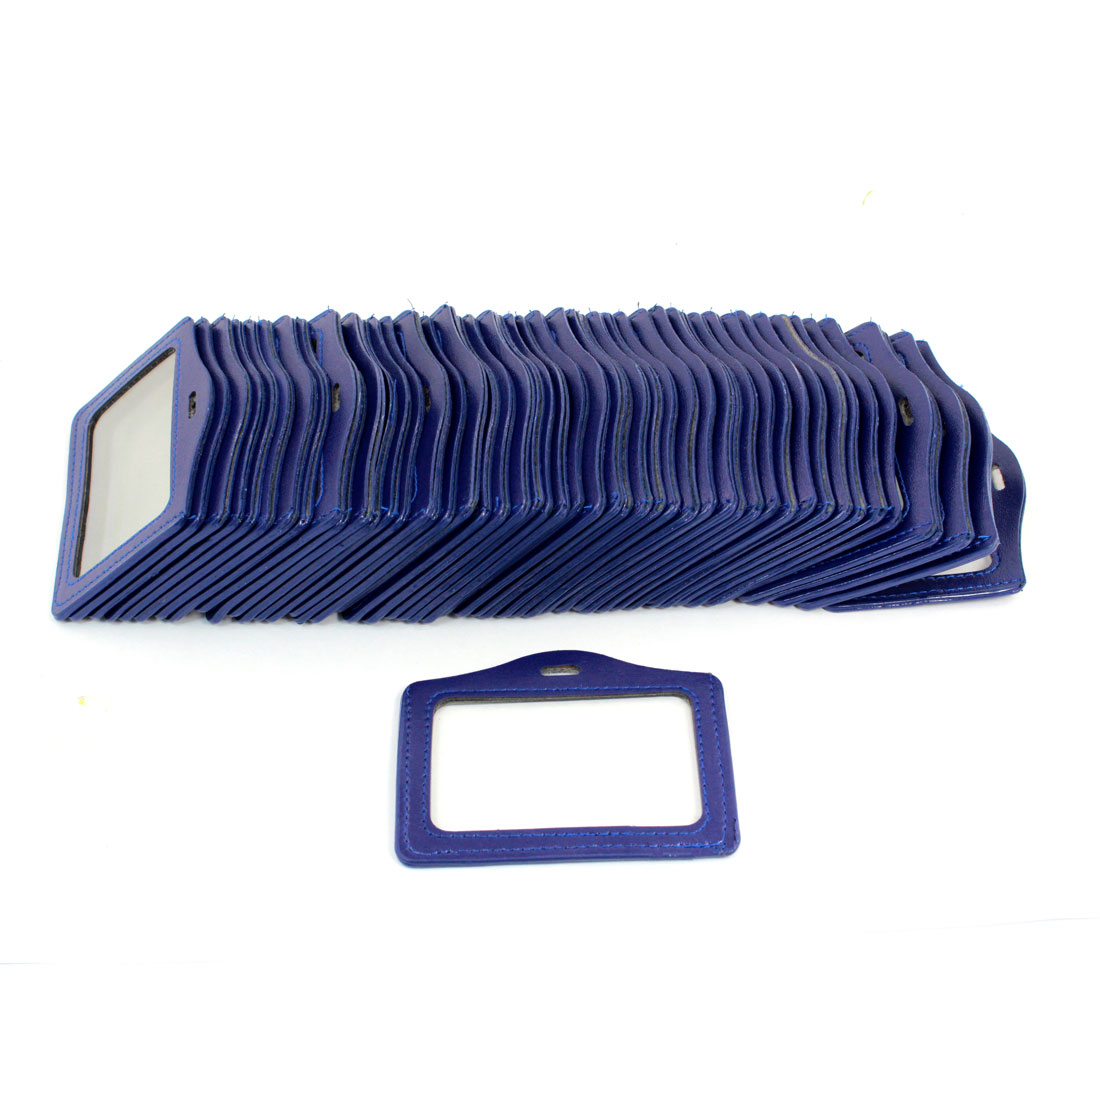 50 Pcs Rectangular Faux Leather Business Office Bank Worker ID Badge Card Holder Blue